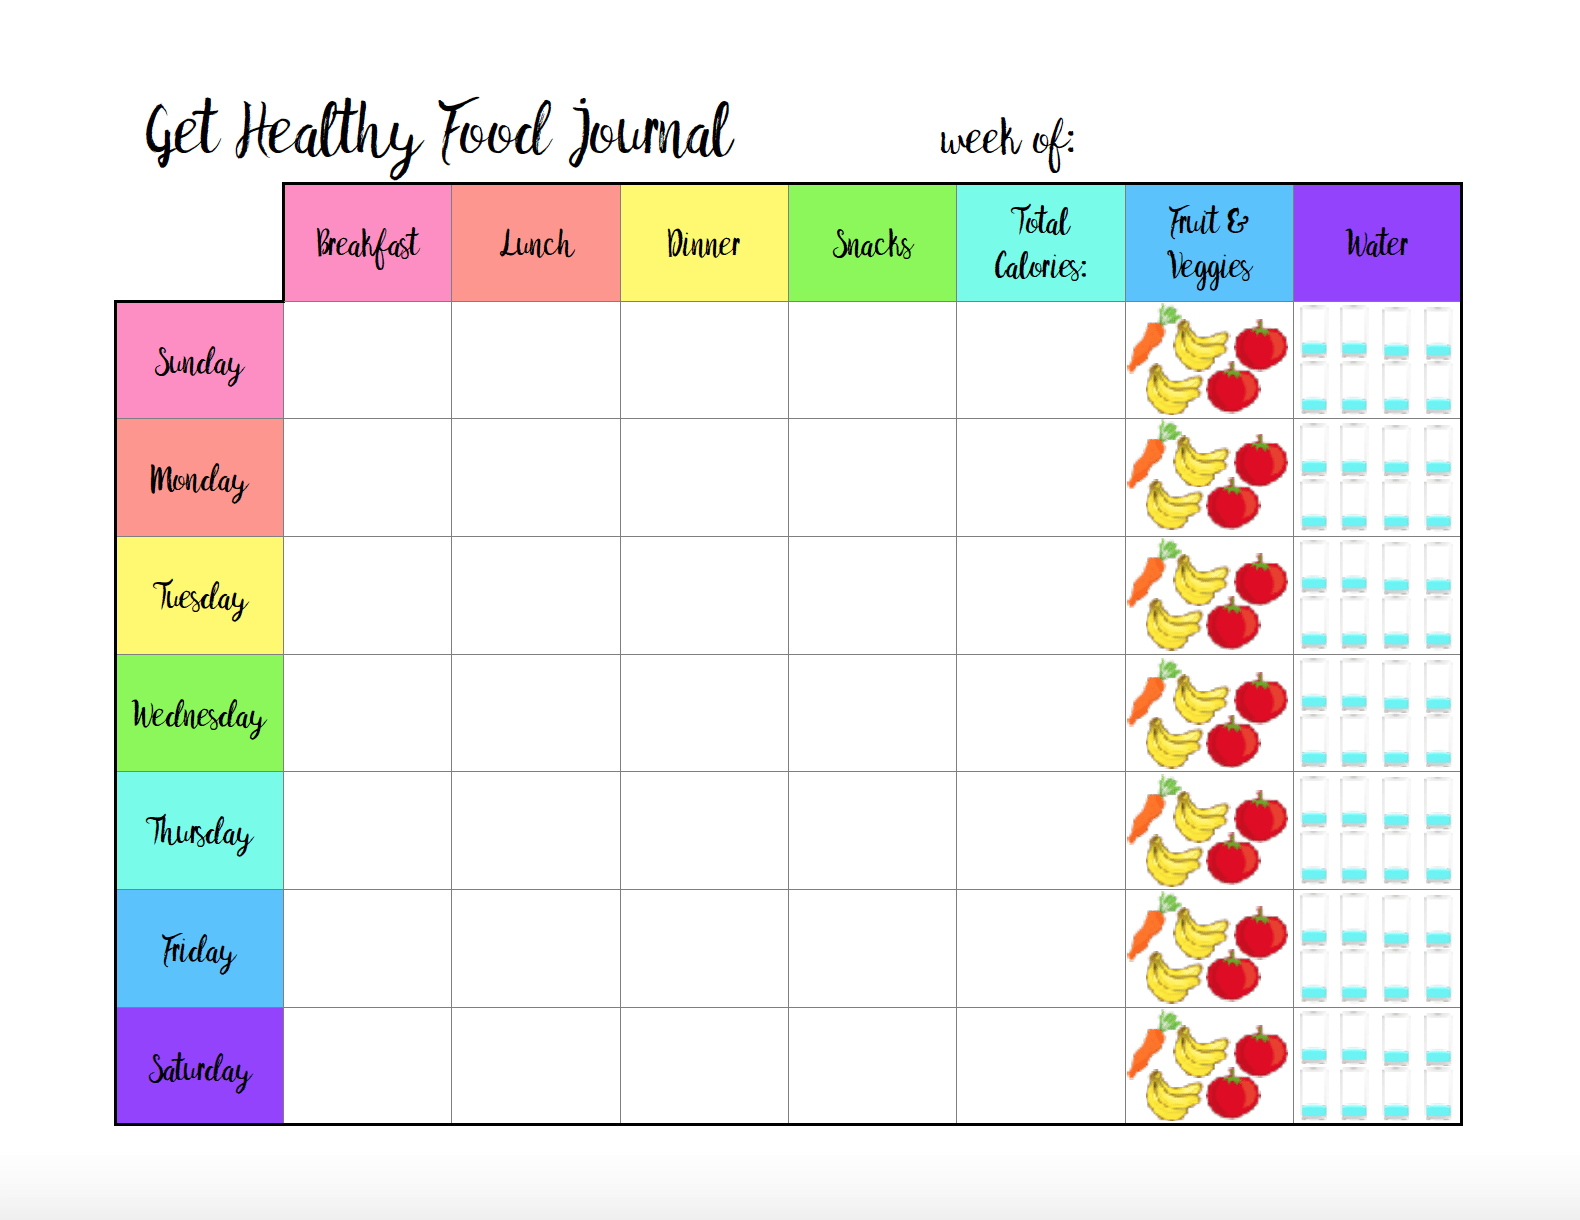 Food Diary Printable New Free Printable Food Journal 6 Different - Free Printable Calorie Counter Sheet